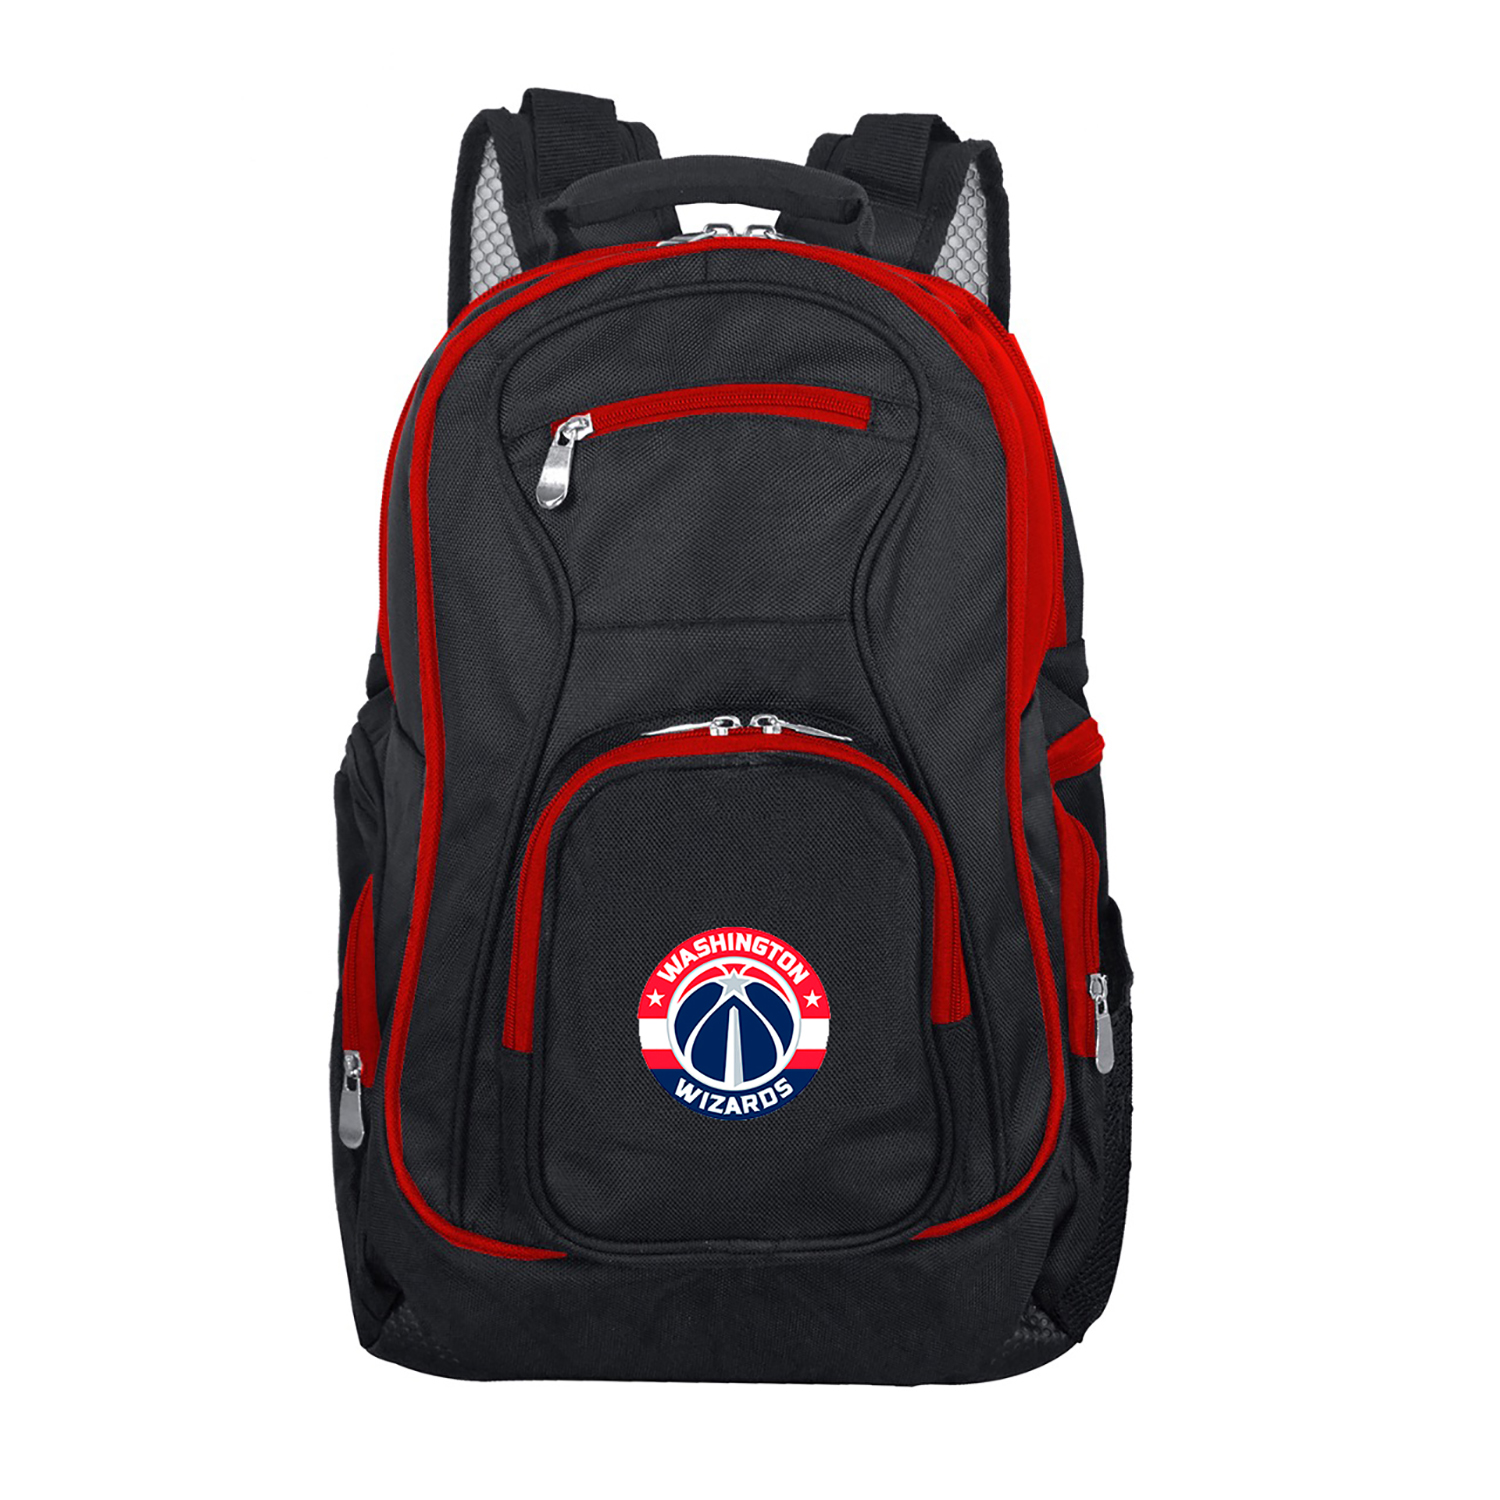 NBA Washington Wizards Premium Laptop Backpack with Colored Trim